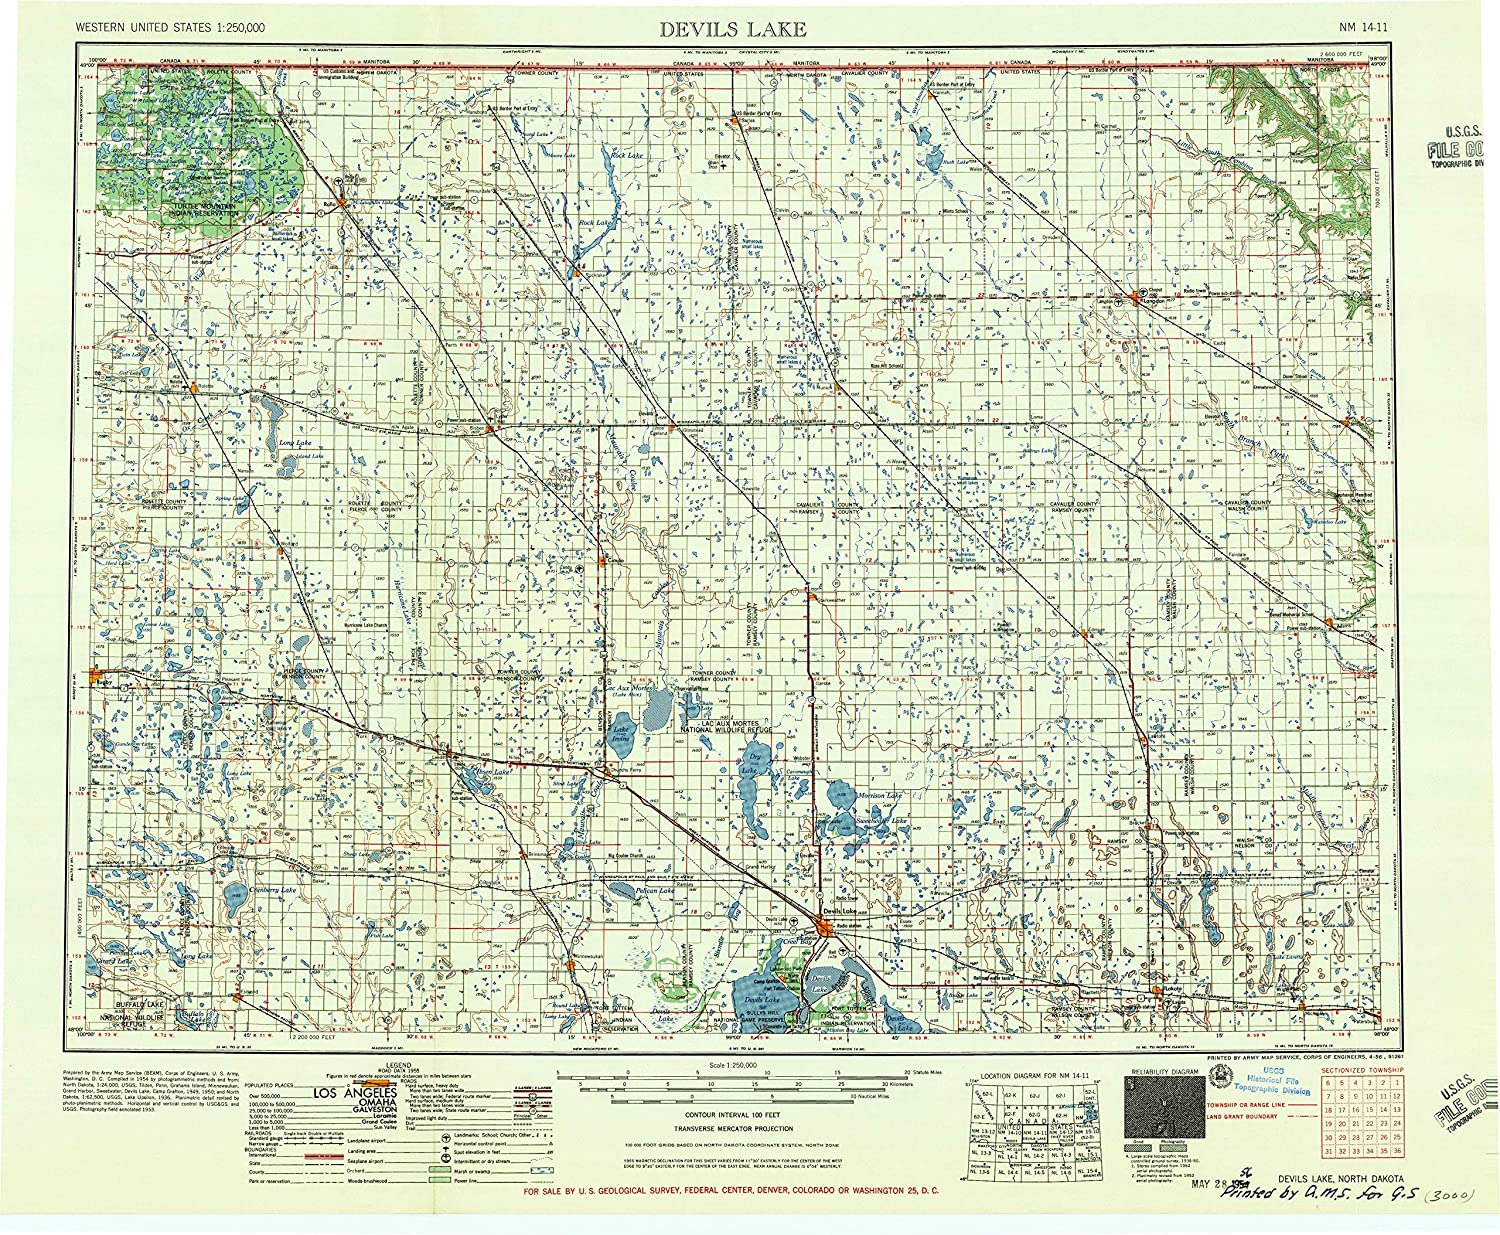 Amazon.com : YellowMaps Devils Lake ND topo map, 1:250000 ... on time zone map, ae map, ca map, nh map, ne map, efis map, nv map, sd map, ks map, al map, ohio map, mn map, ri map, w.va map, co map, wy map, md map, eastern oh map, mo map, wa map,